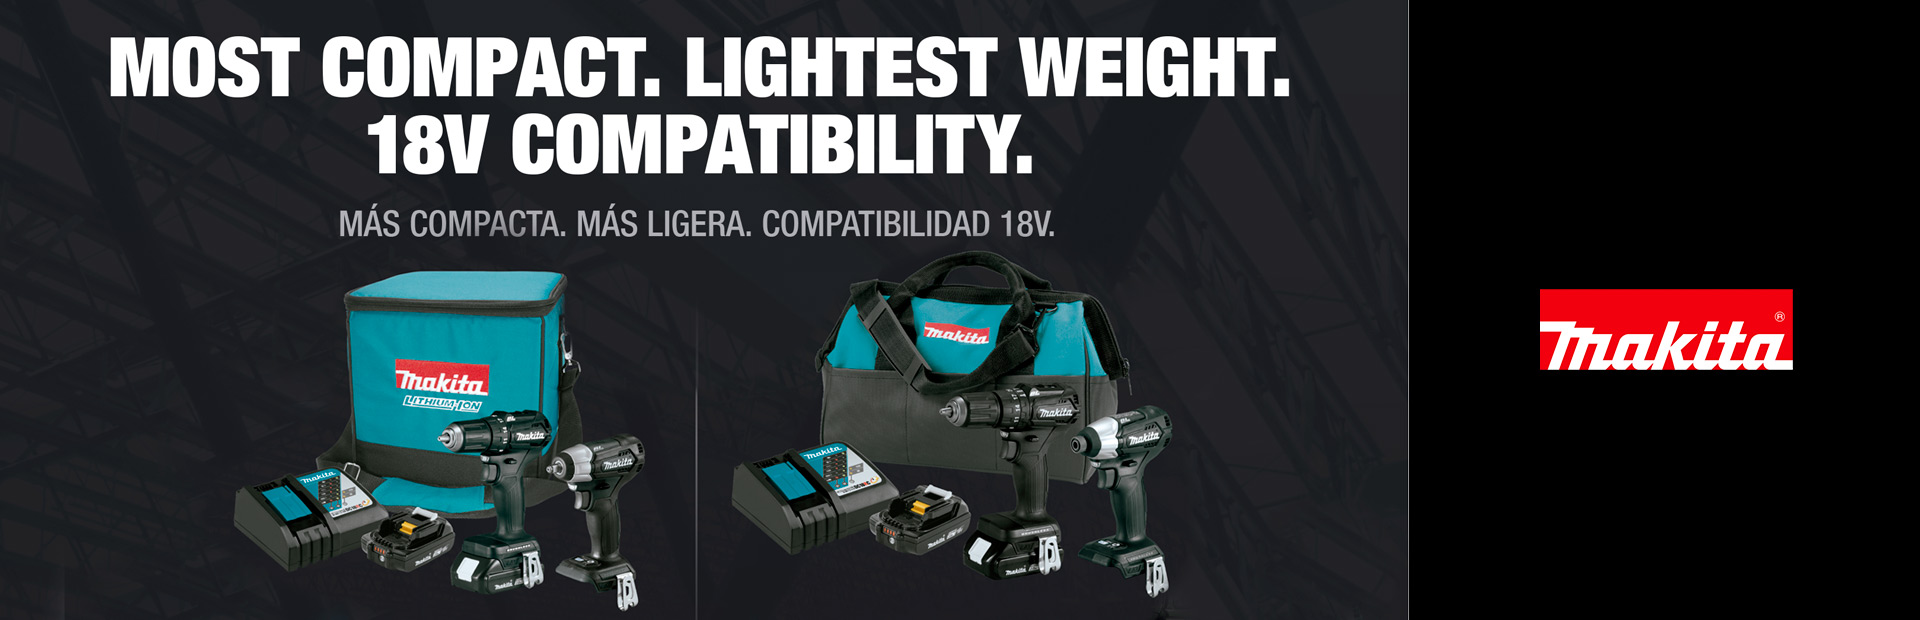 Makita: Most Compact. Lightest Weight. 18V Compatibility